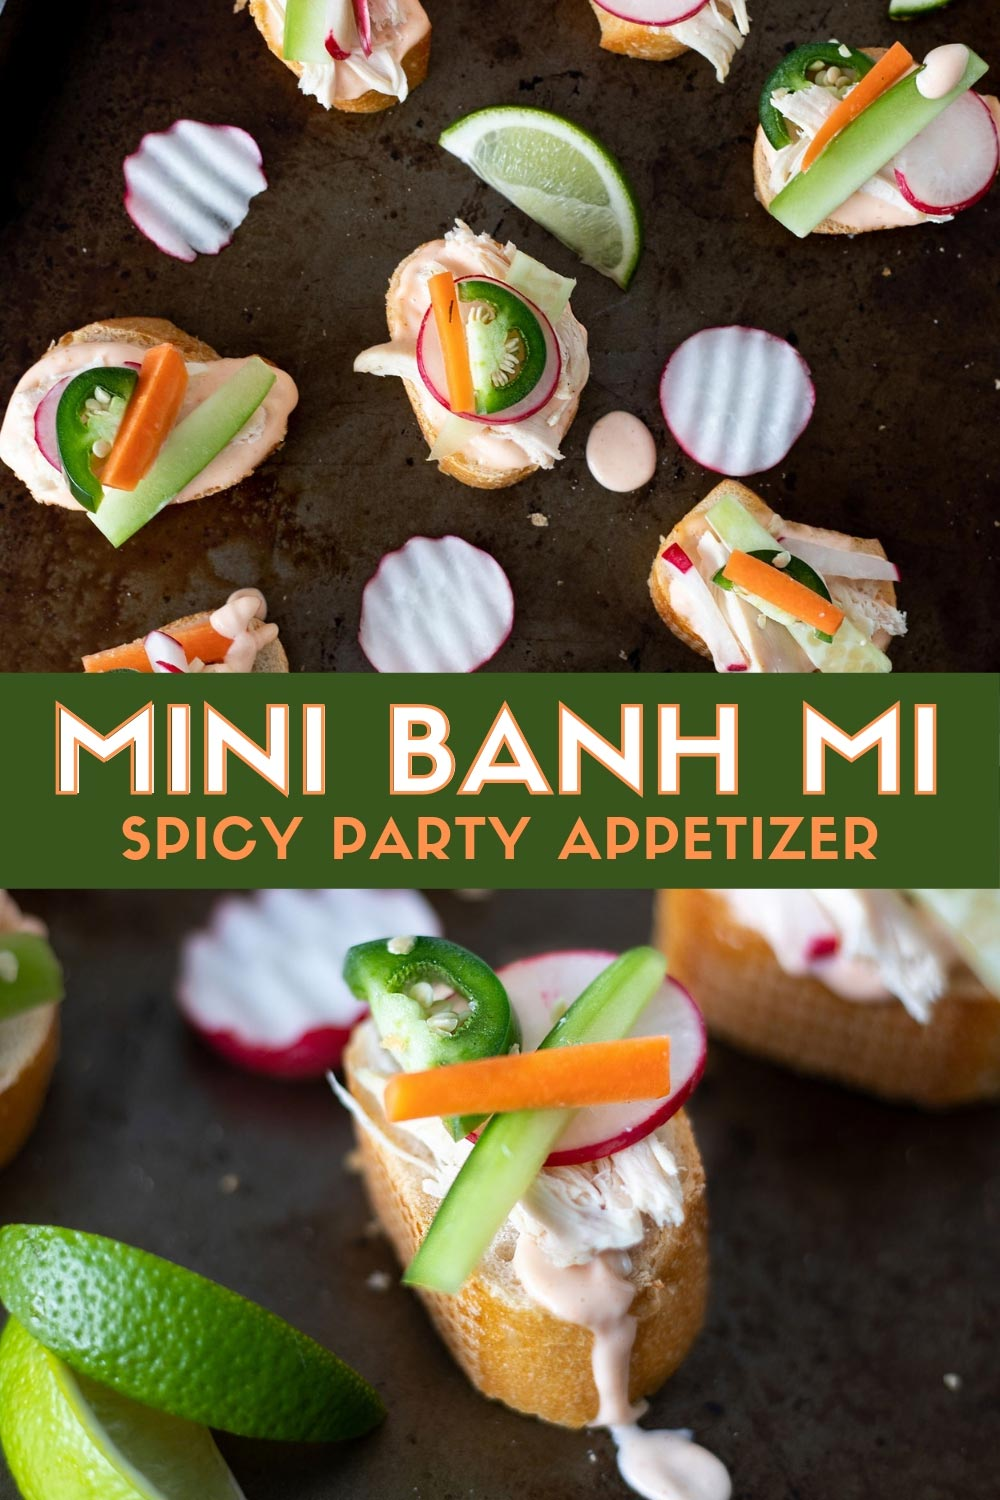 Mini Banh Mi sandwiches are the perfect appetizer for game day or party food. This take on the Veitmenease classic uses leftover rotisserie chicken to make a spicy finger food. #BanhMi #Gameday #Appetizer #PartyFood #MiniFood #PartyRecipe #ElleTalk